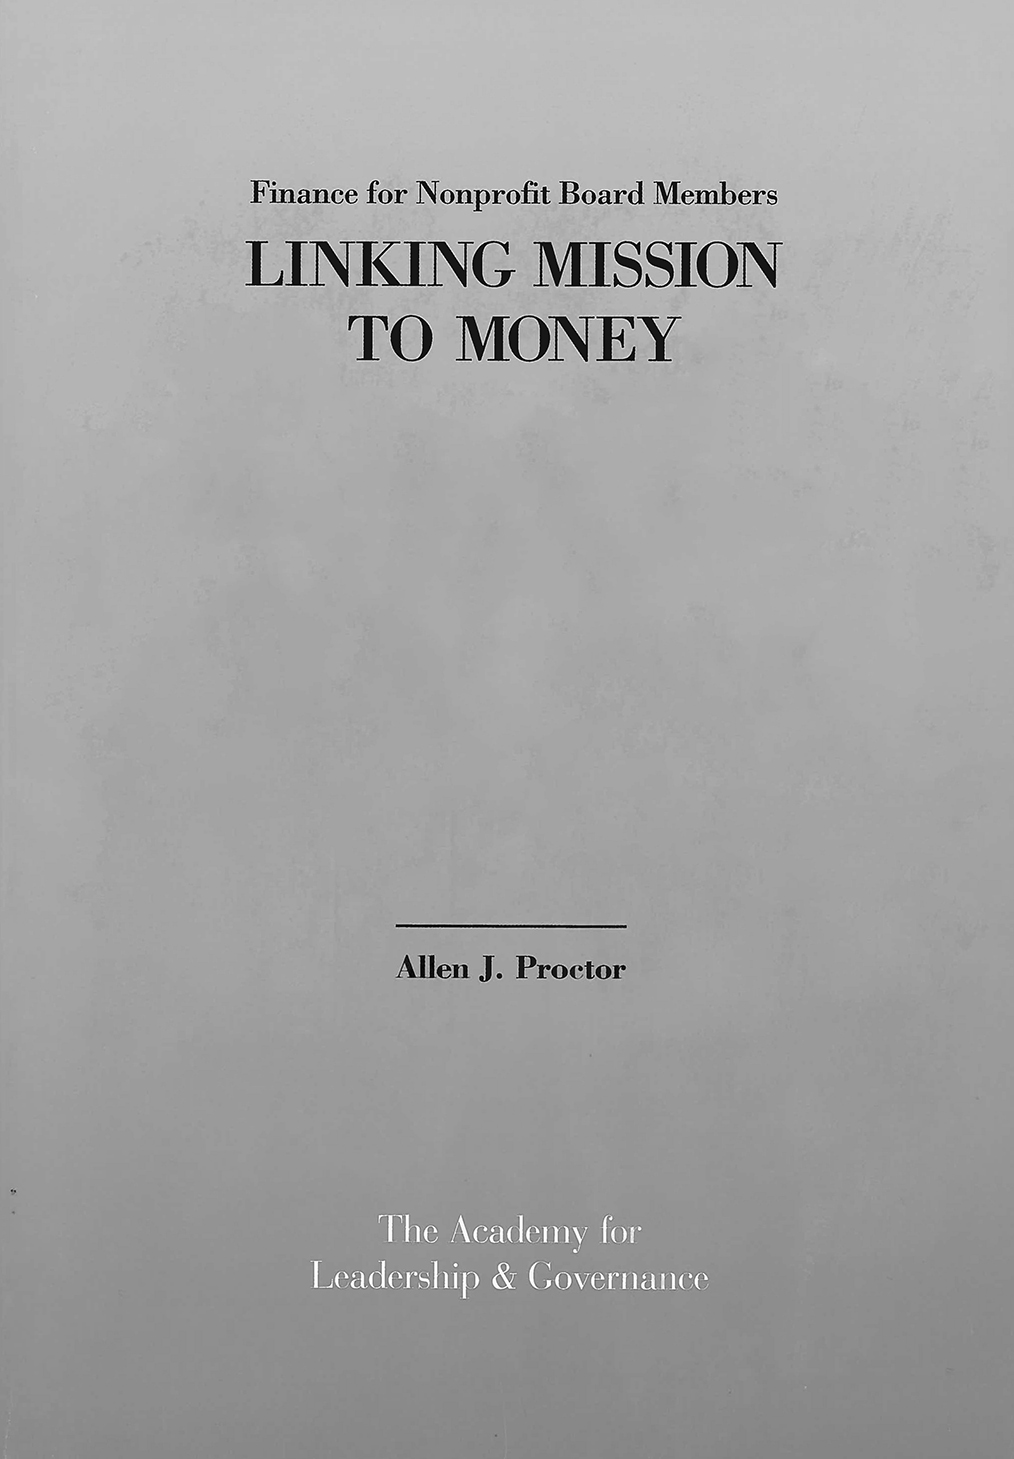 Finance for Nonprofit Board Members: Linking Mission to Money